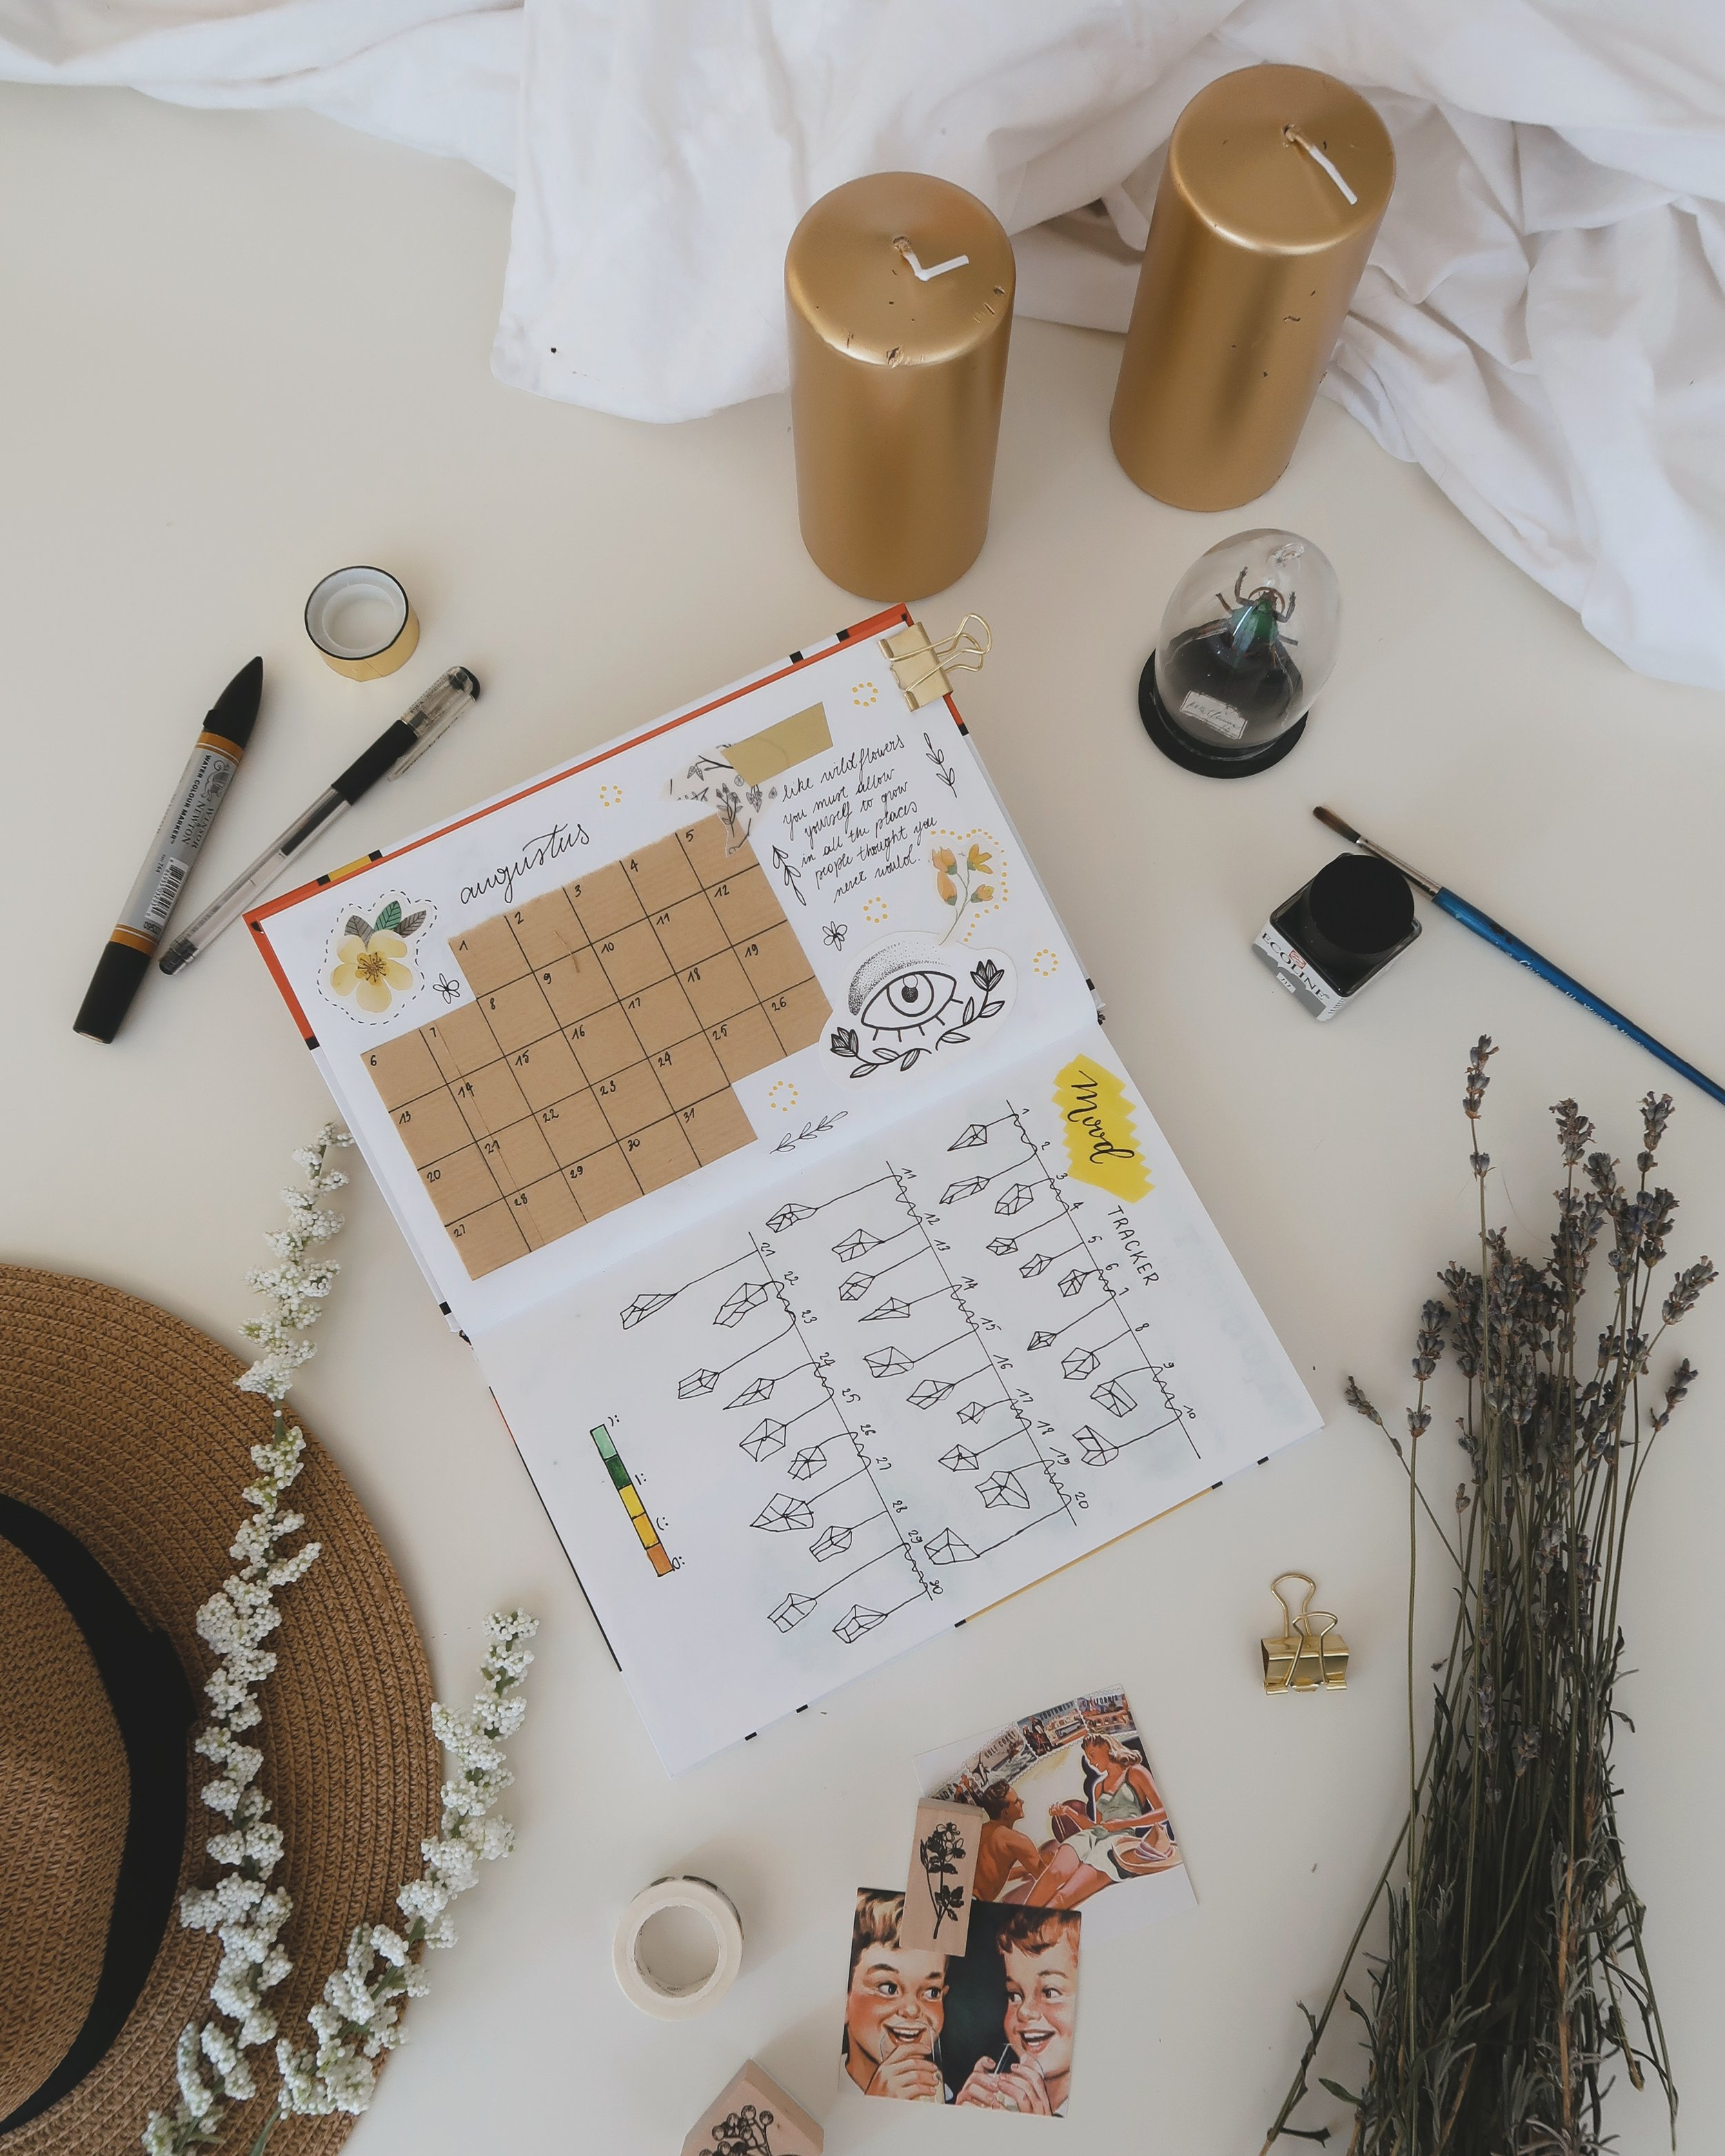 Photo looking at the top of a desk with pens, a scrape book with handmade calendar and drawings, lavender flowers, hat, paint brush, beetle in a case.